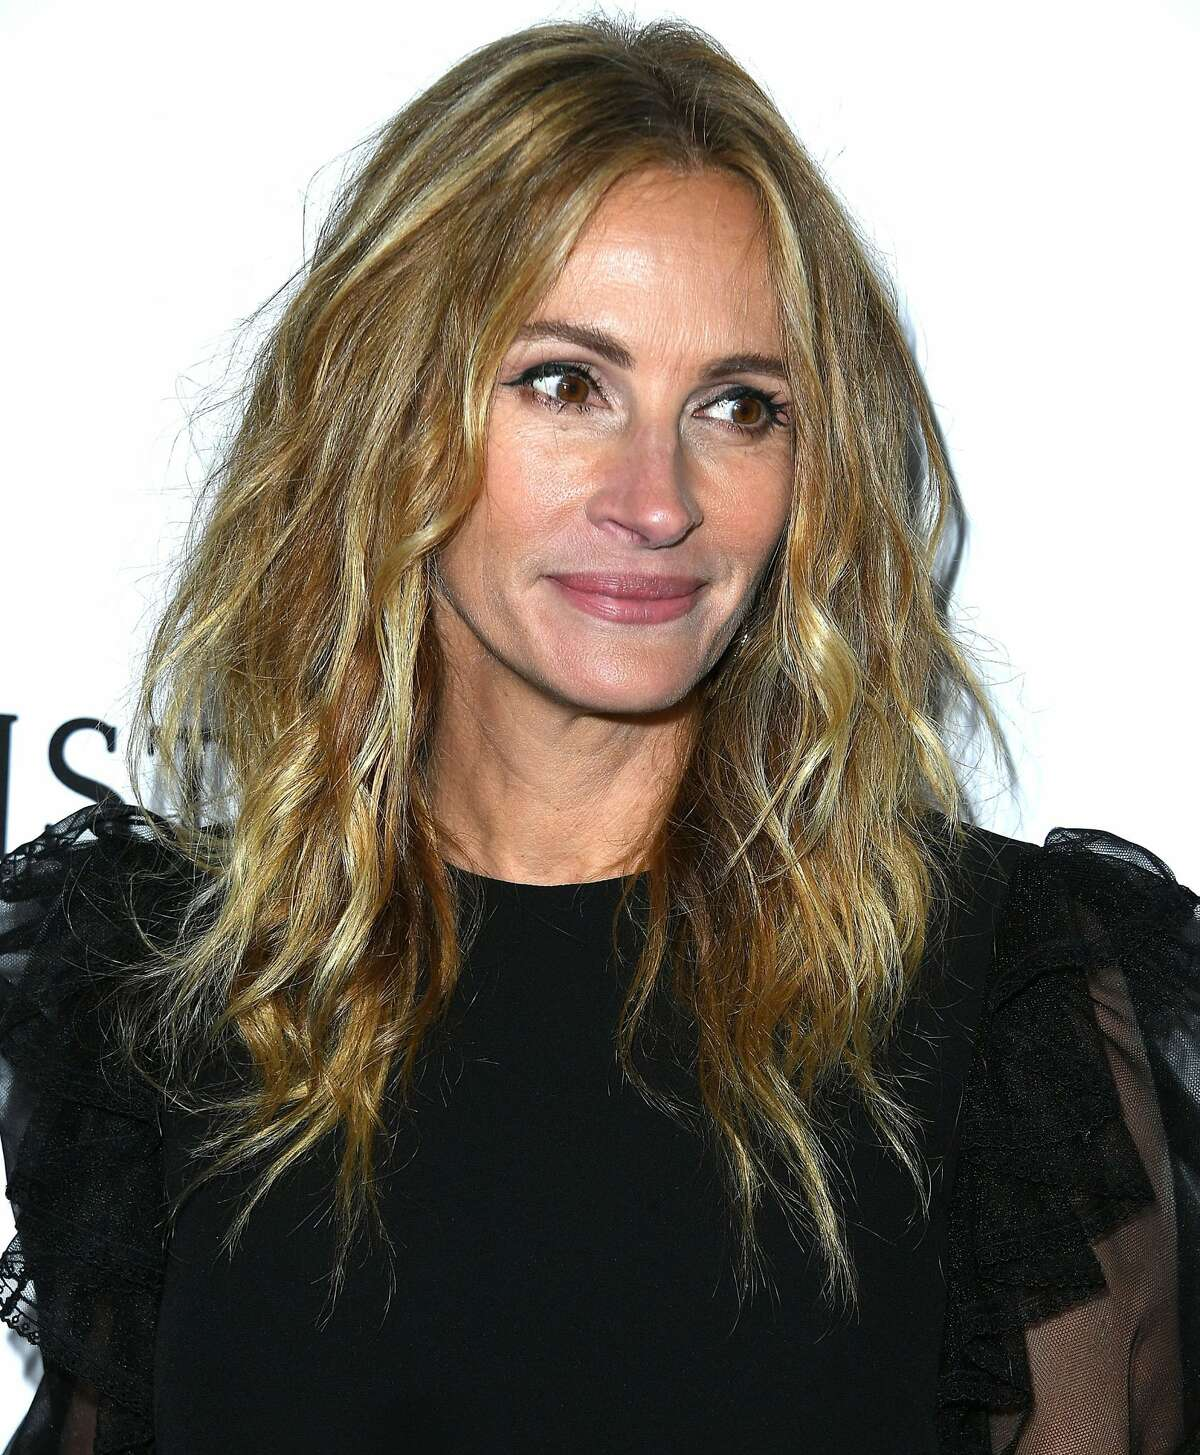 Julia Roberts was seen shopping in San Francisco's Mission District on Sunday.